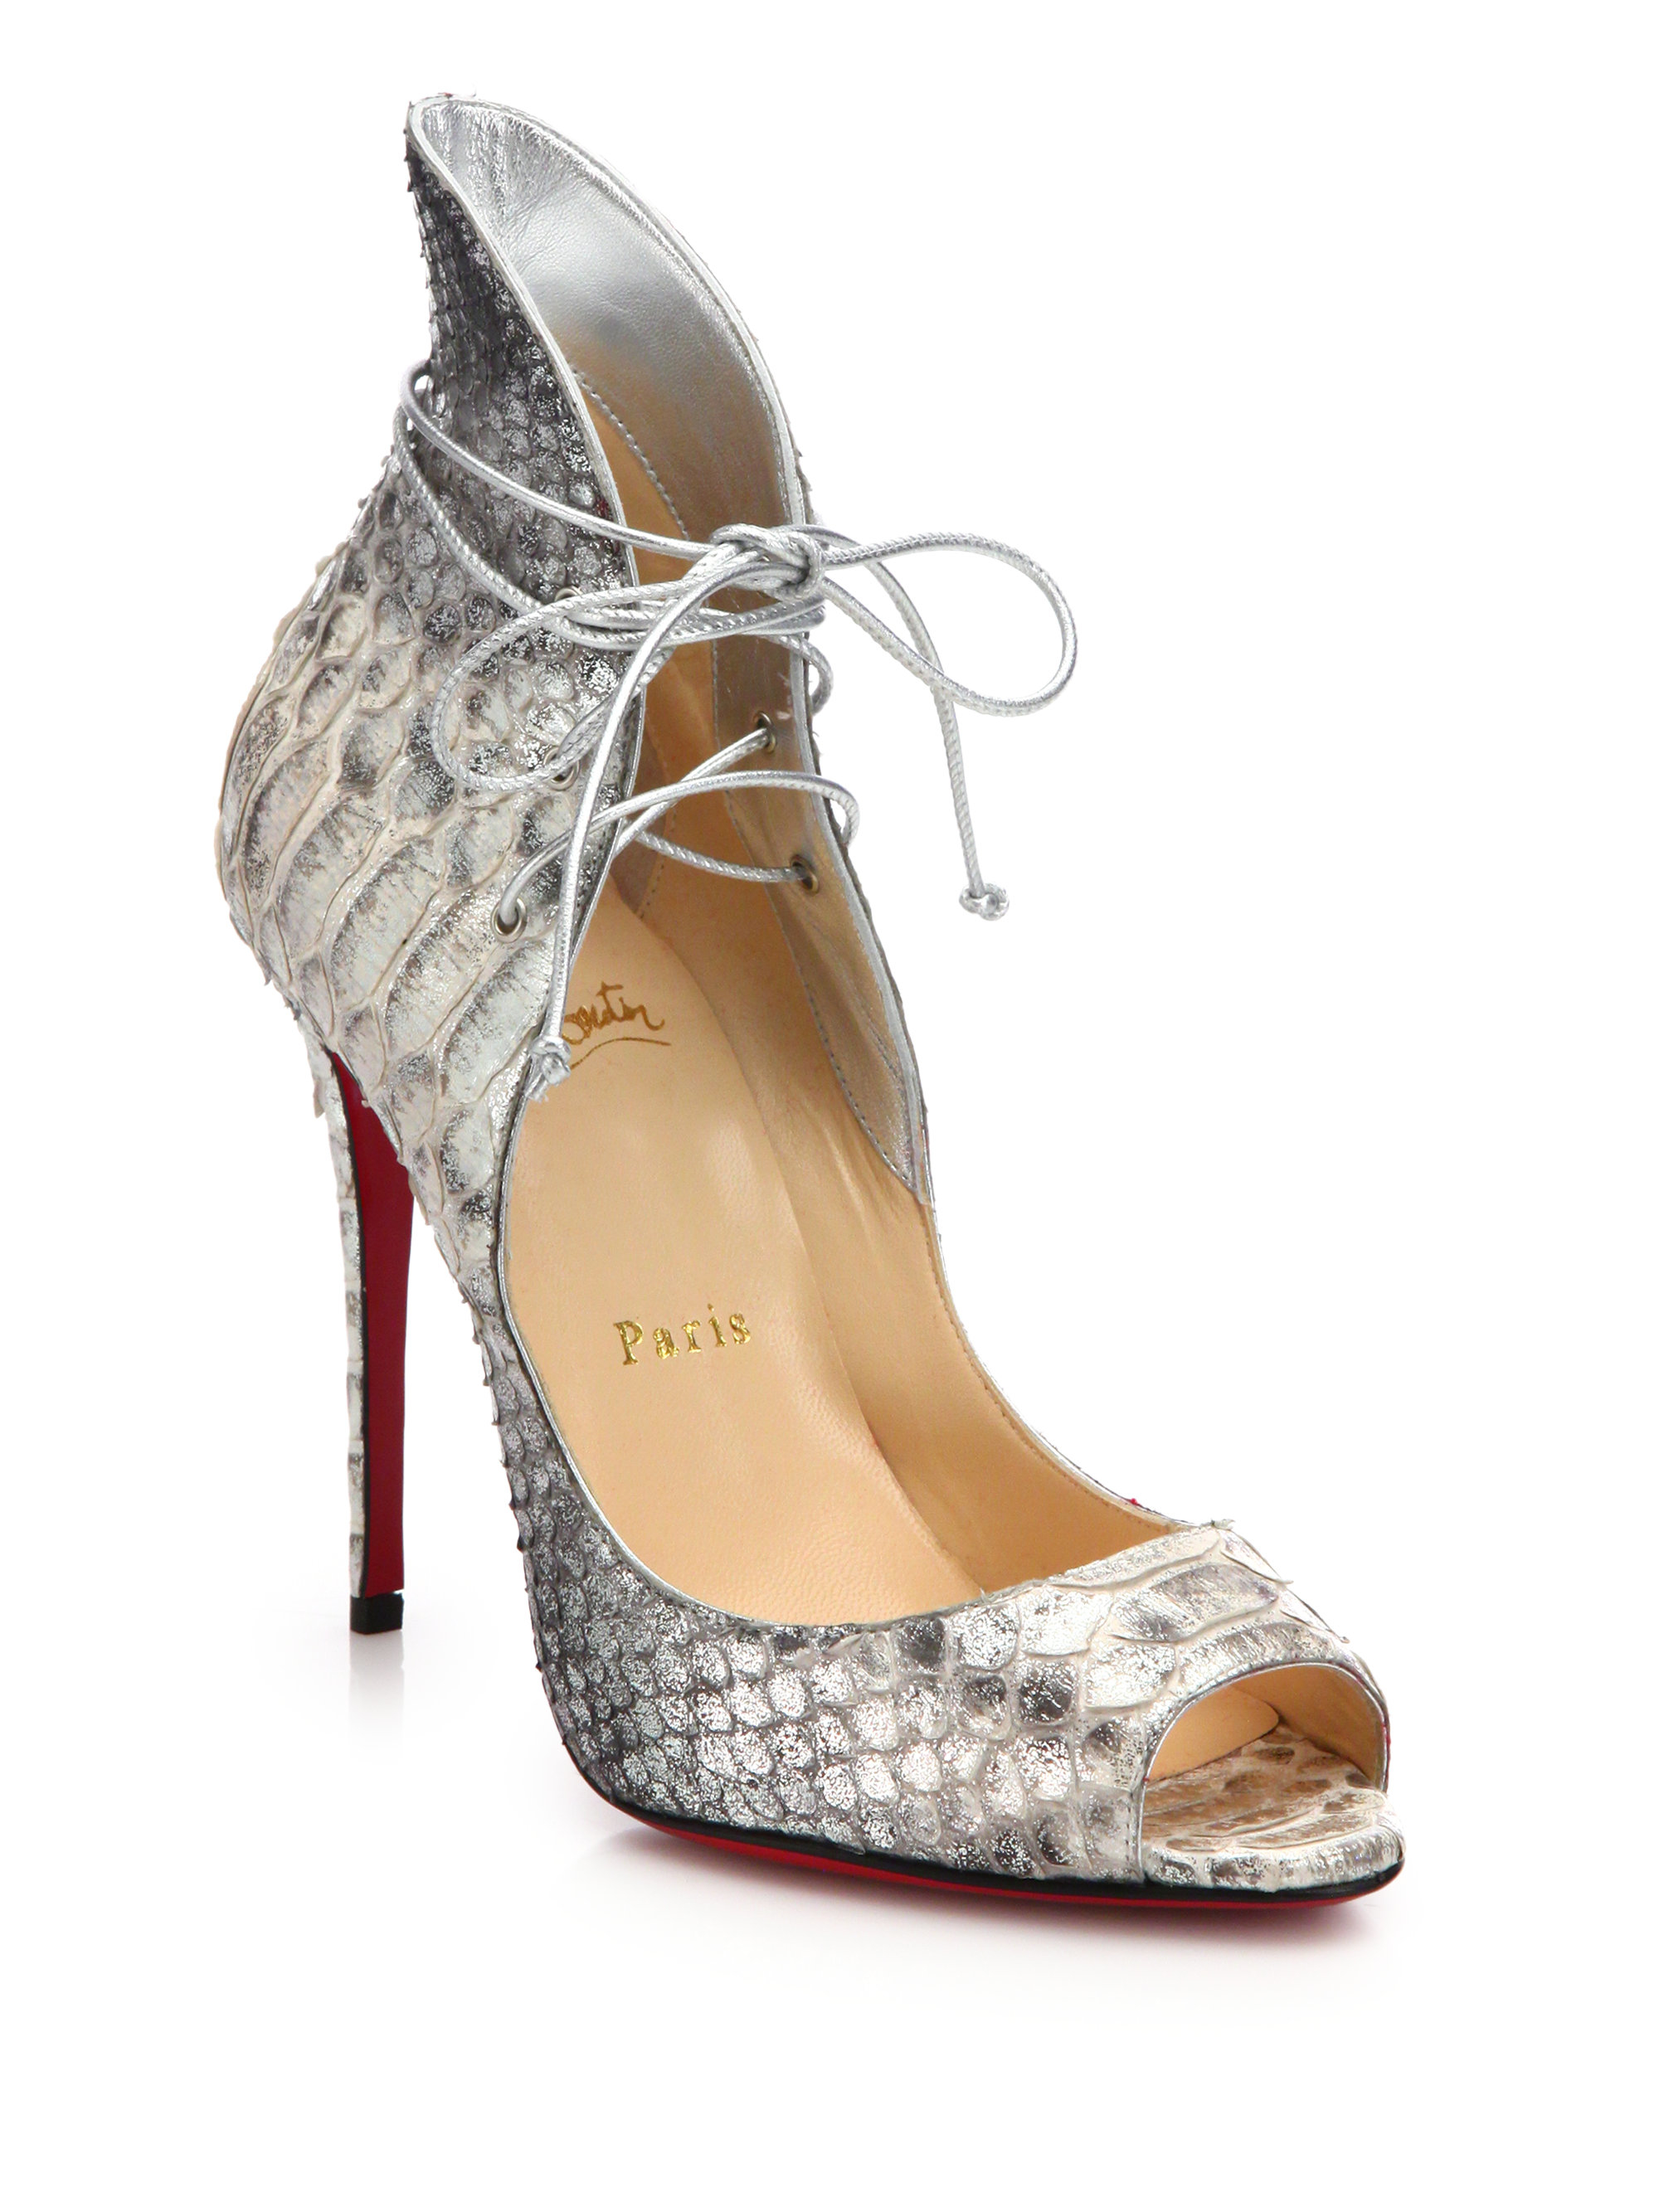 77b37905e69 Lyst - Christian Louboutin Megavamp Python-Embossed Leather Pumps in ...